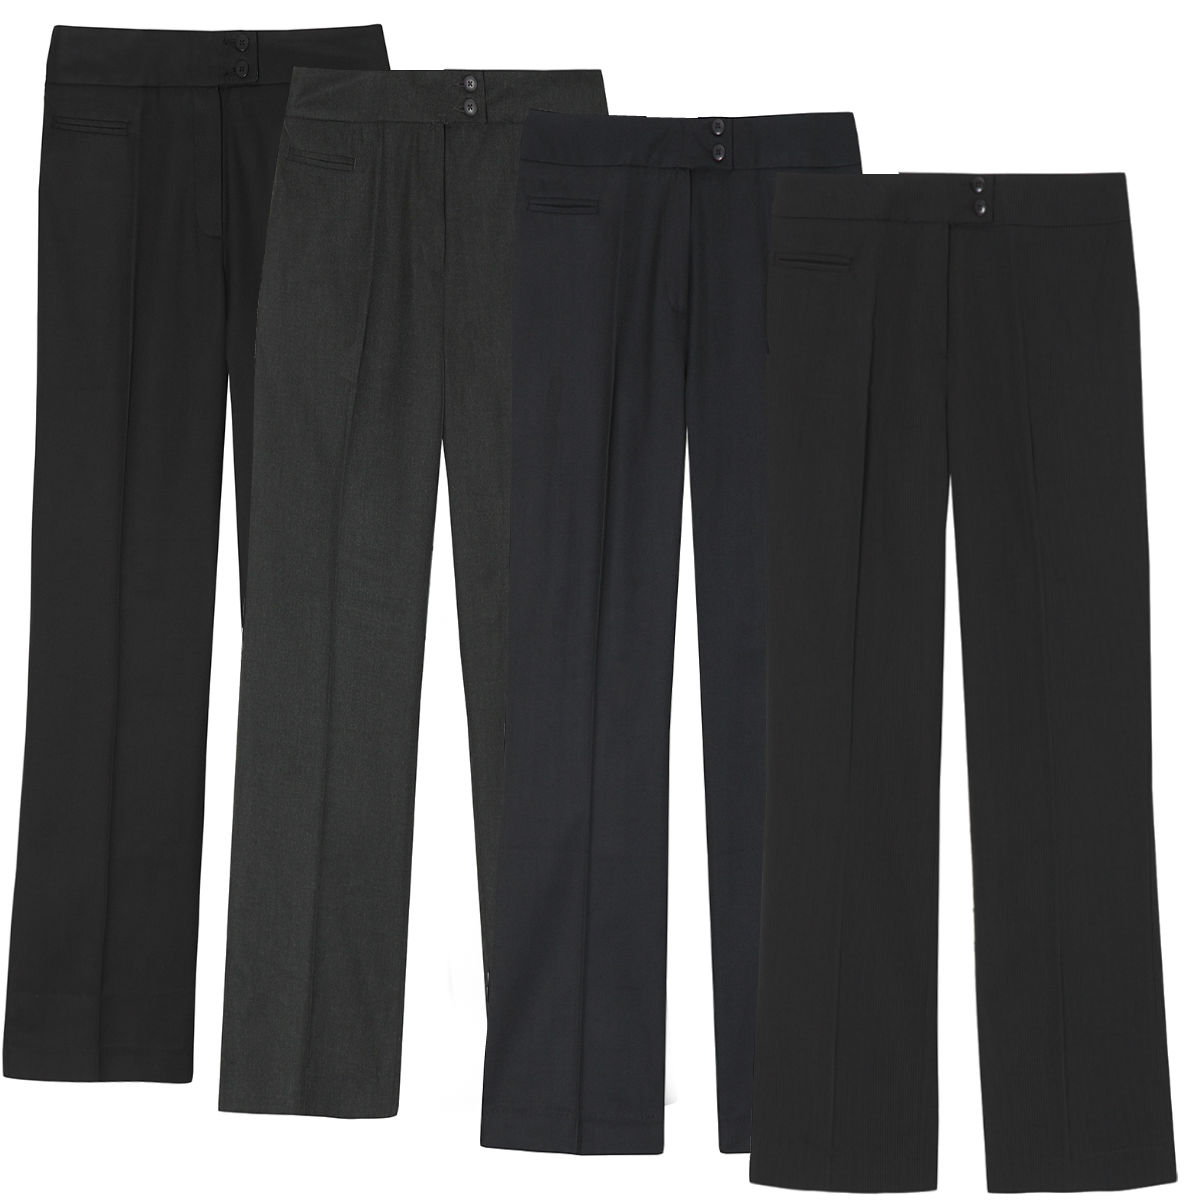 d8a641a7c0694 Ladies Plus Size Straight Leg Work Trousers (Sizes 16-26) Formal Office  Pants